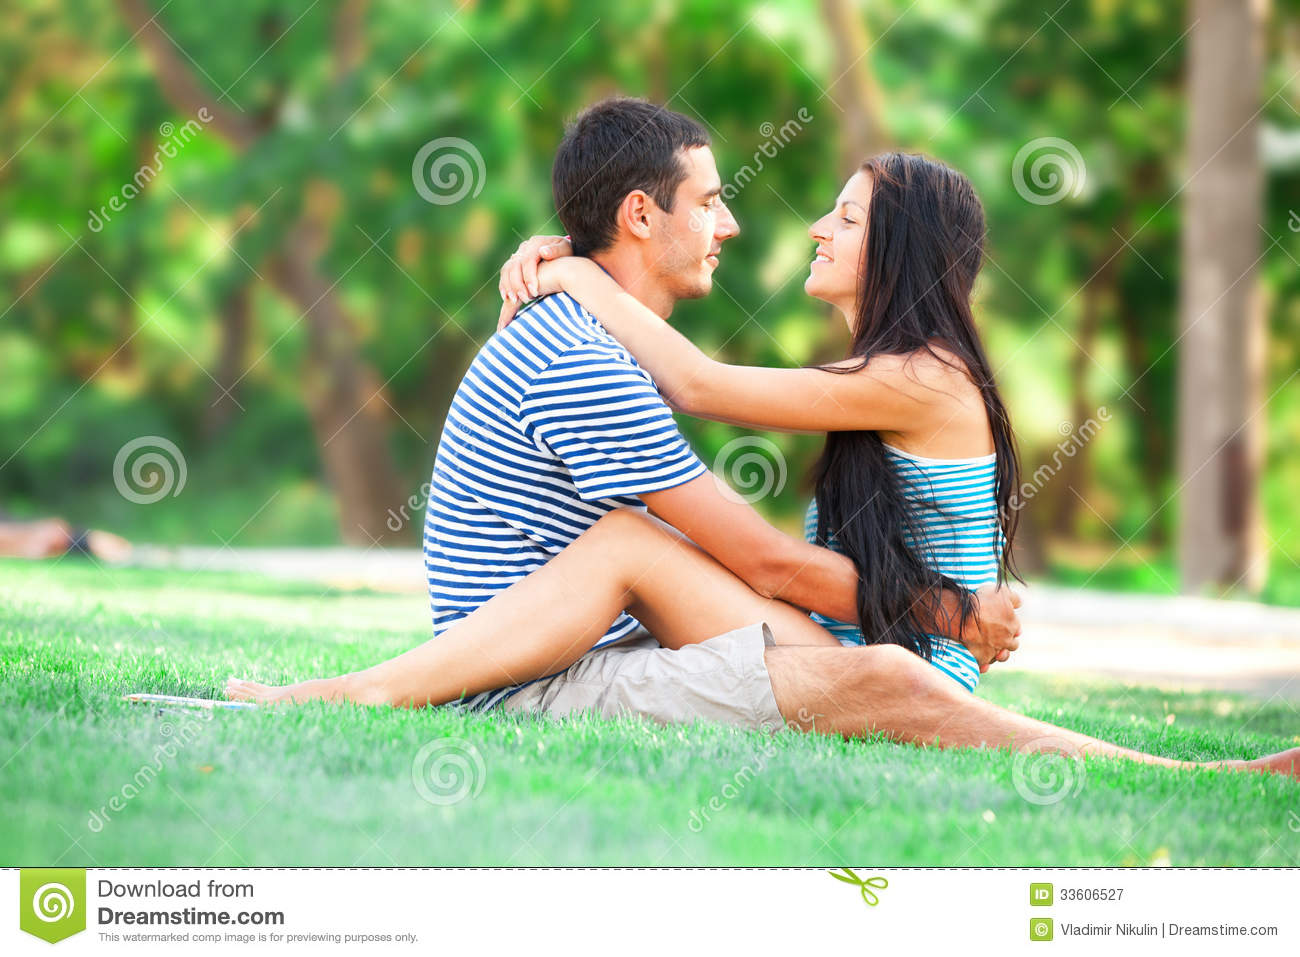 Teen outdoors young couples